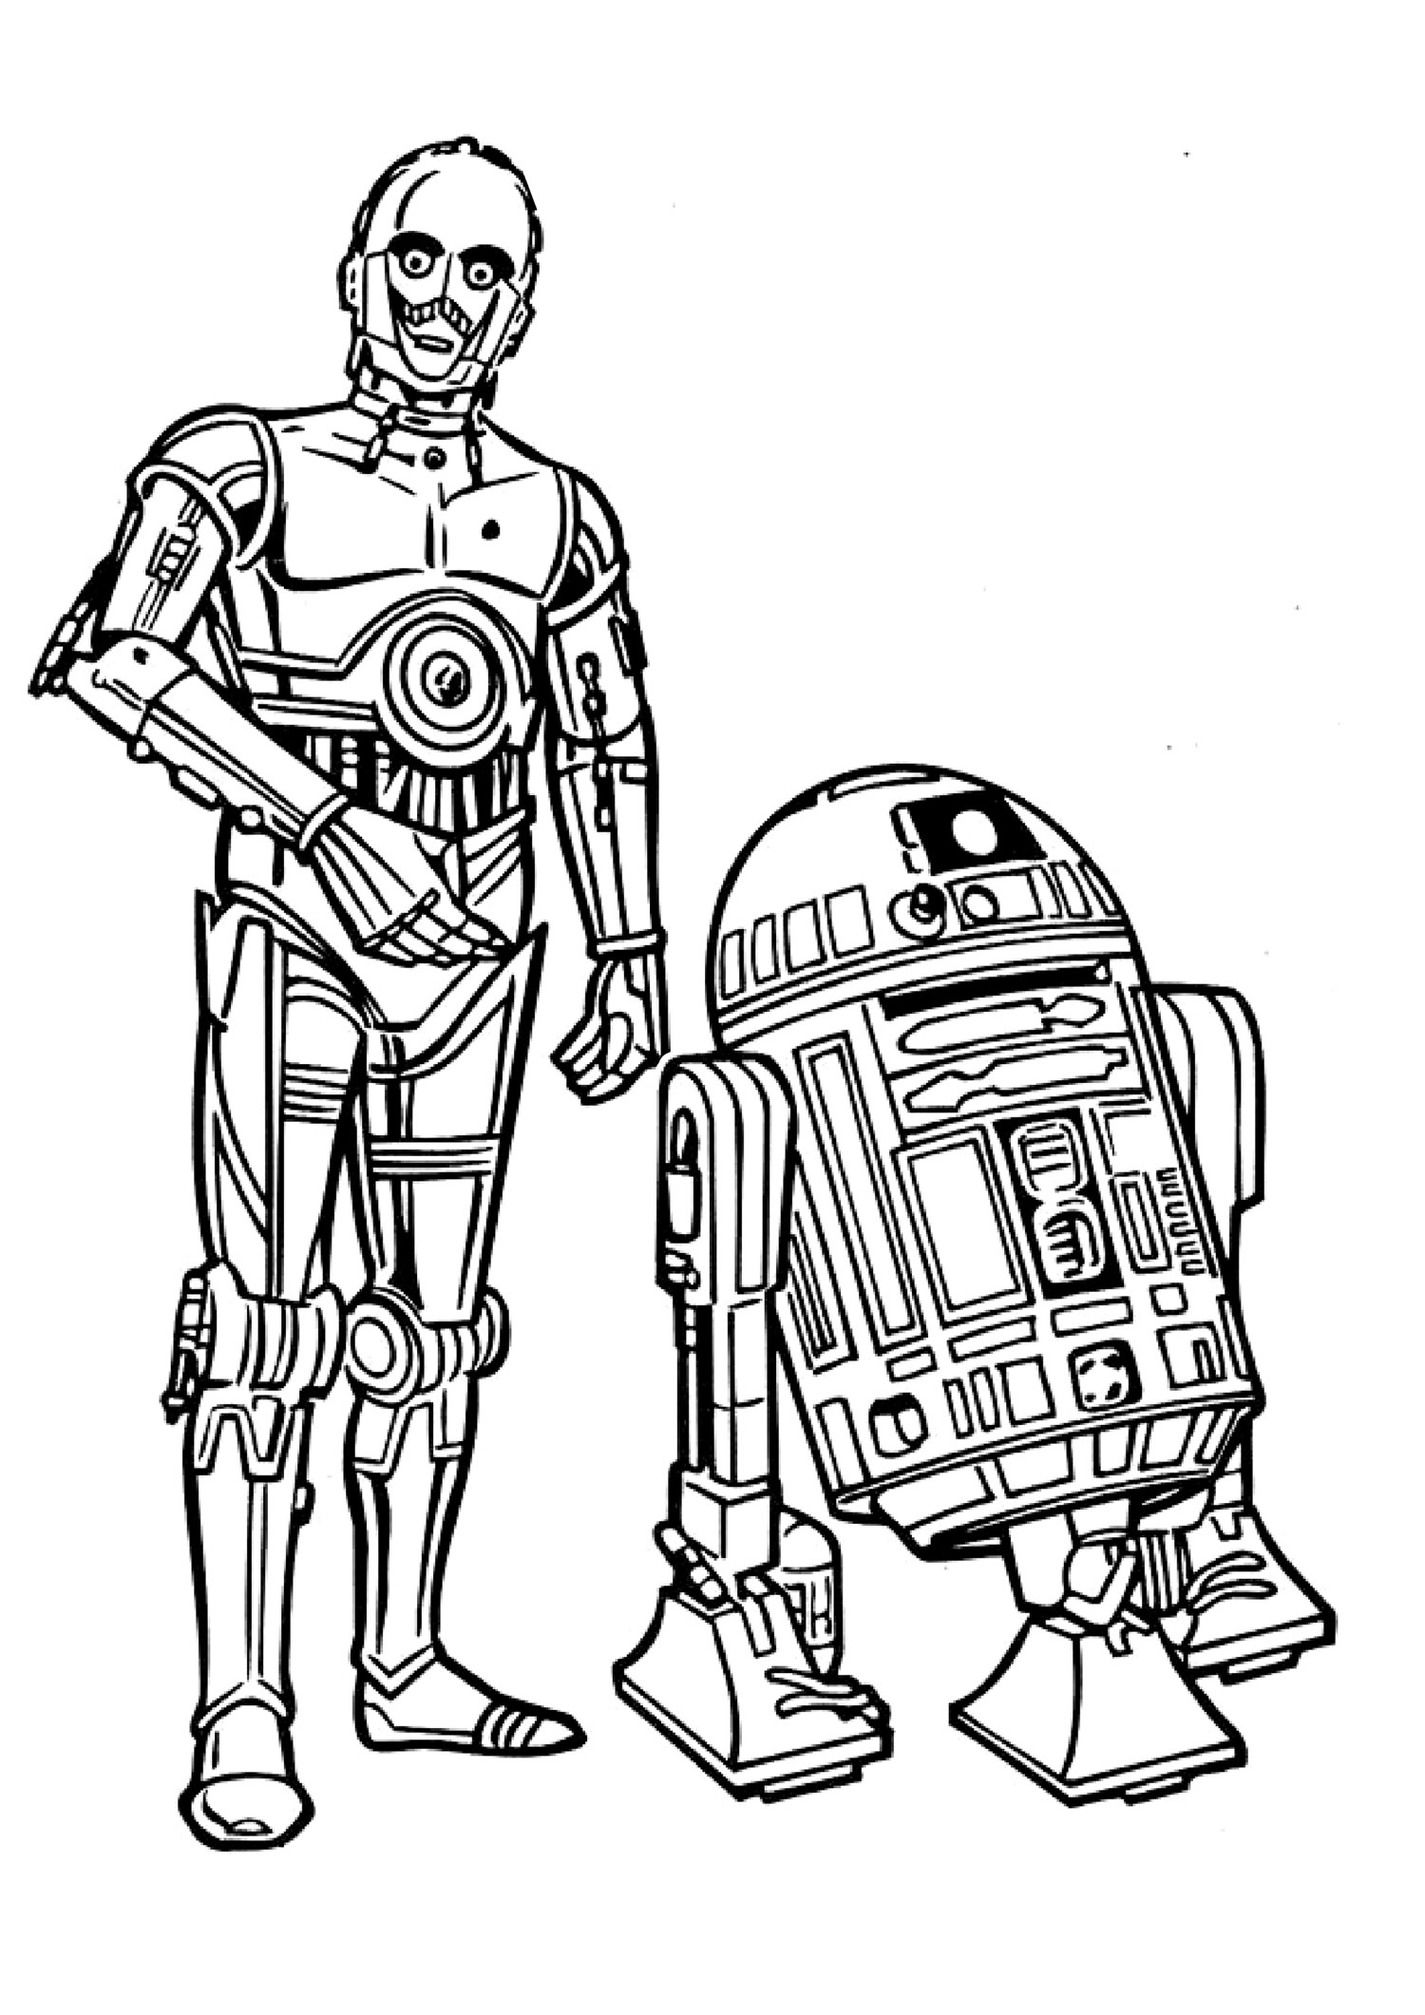 r2d2 coloring pages - photo #37